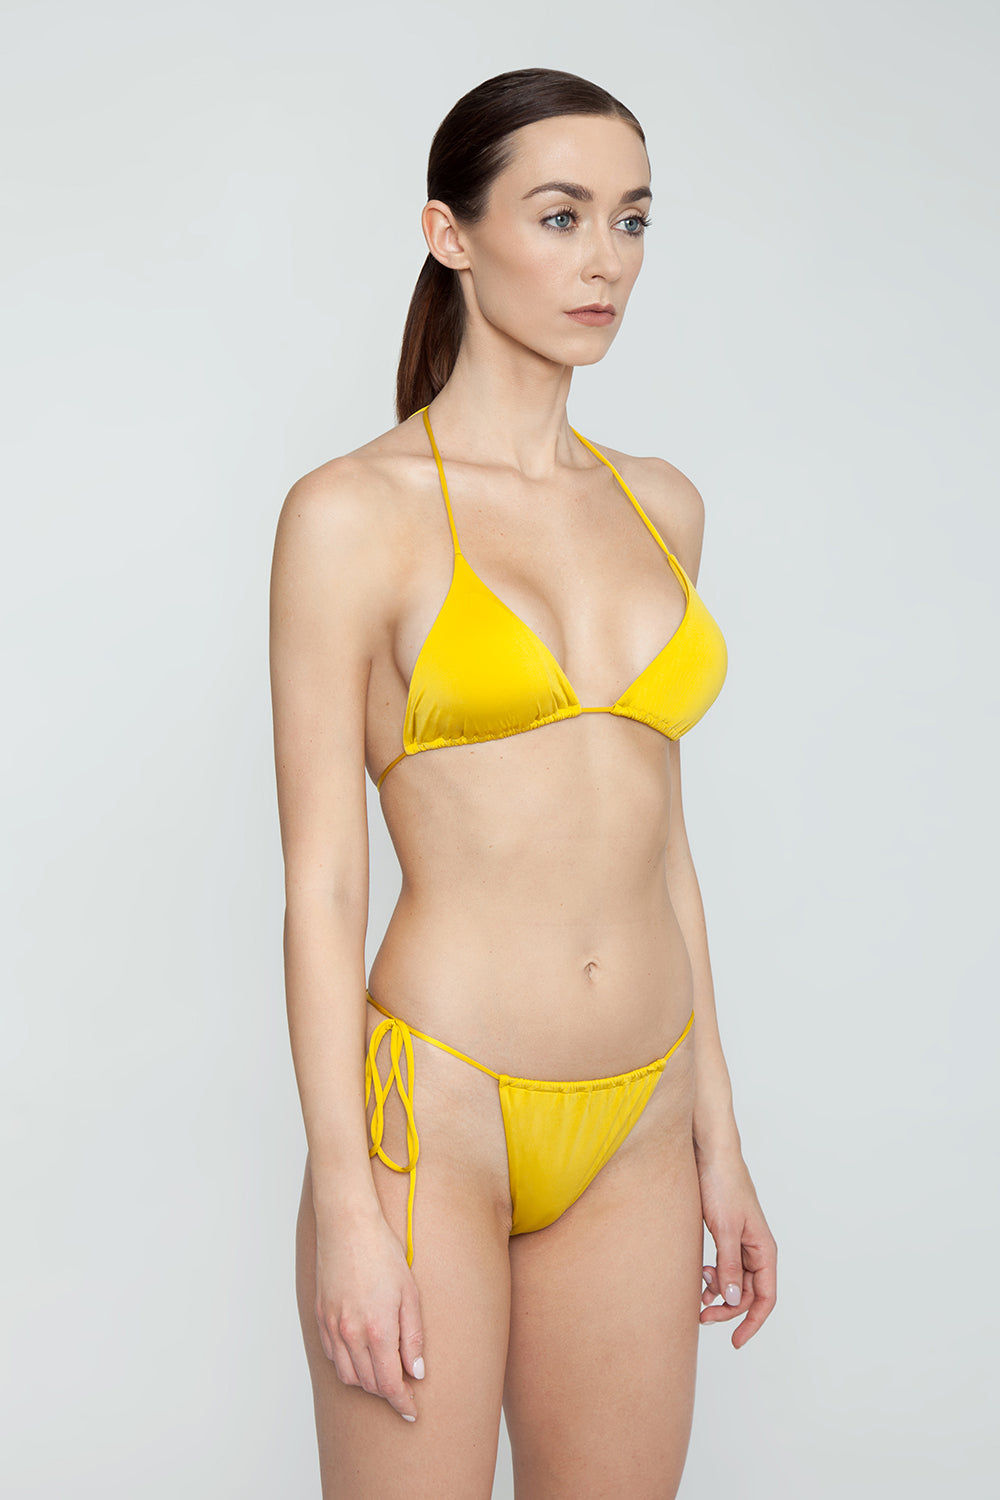 MONICA HANSEN BEACHWEAR That 90's Vibe String Bikini Bottom - Green Olive Bikini Bottom | Green Olive| Monica Hansen That 90's Vibe String Bikini Bottom - Green Olive Single tie side bikini bottom Thin string sides High cut leg  Adjustable coverage in front and back Skimpy to cheeky coverage  Side View